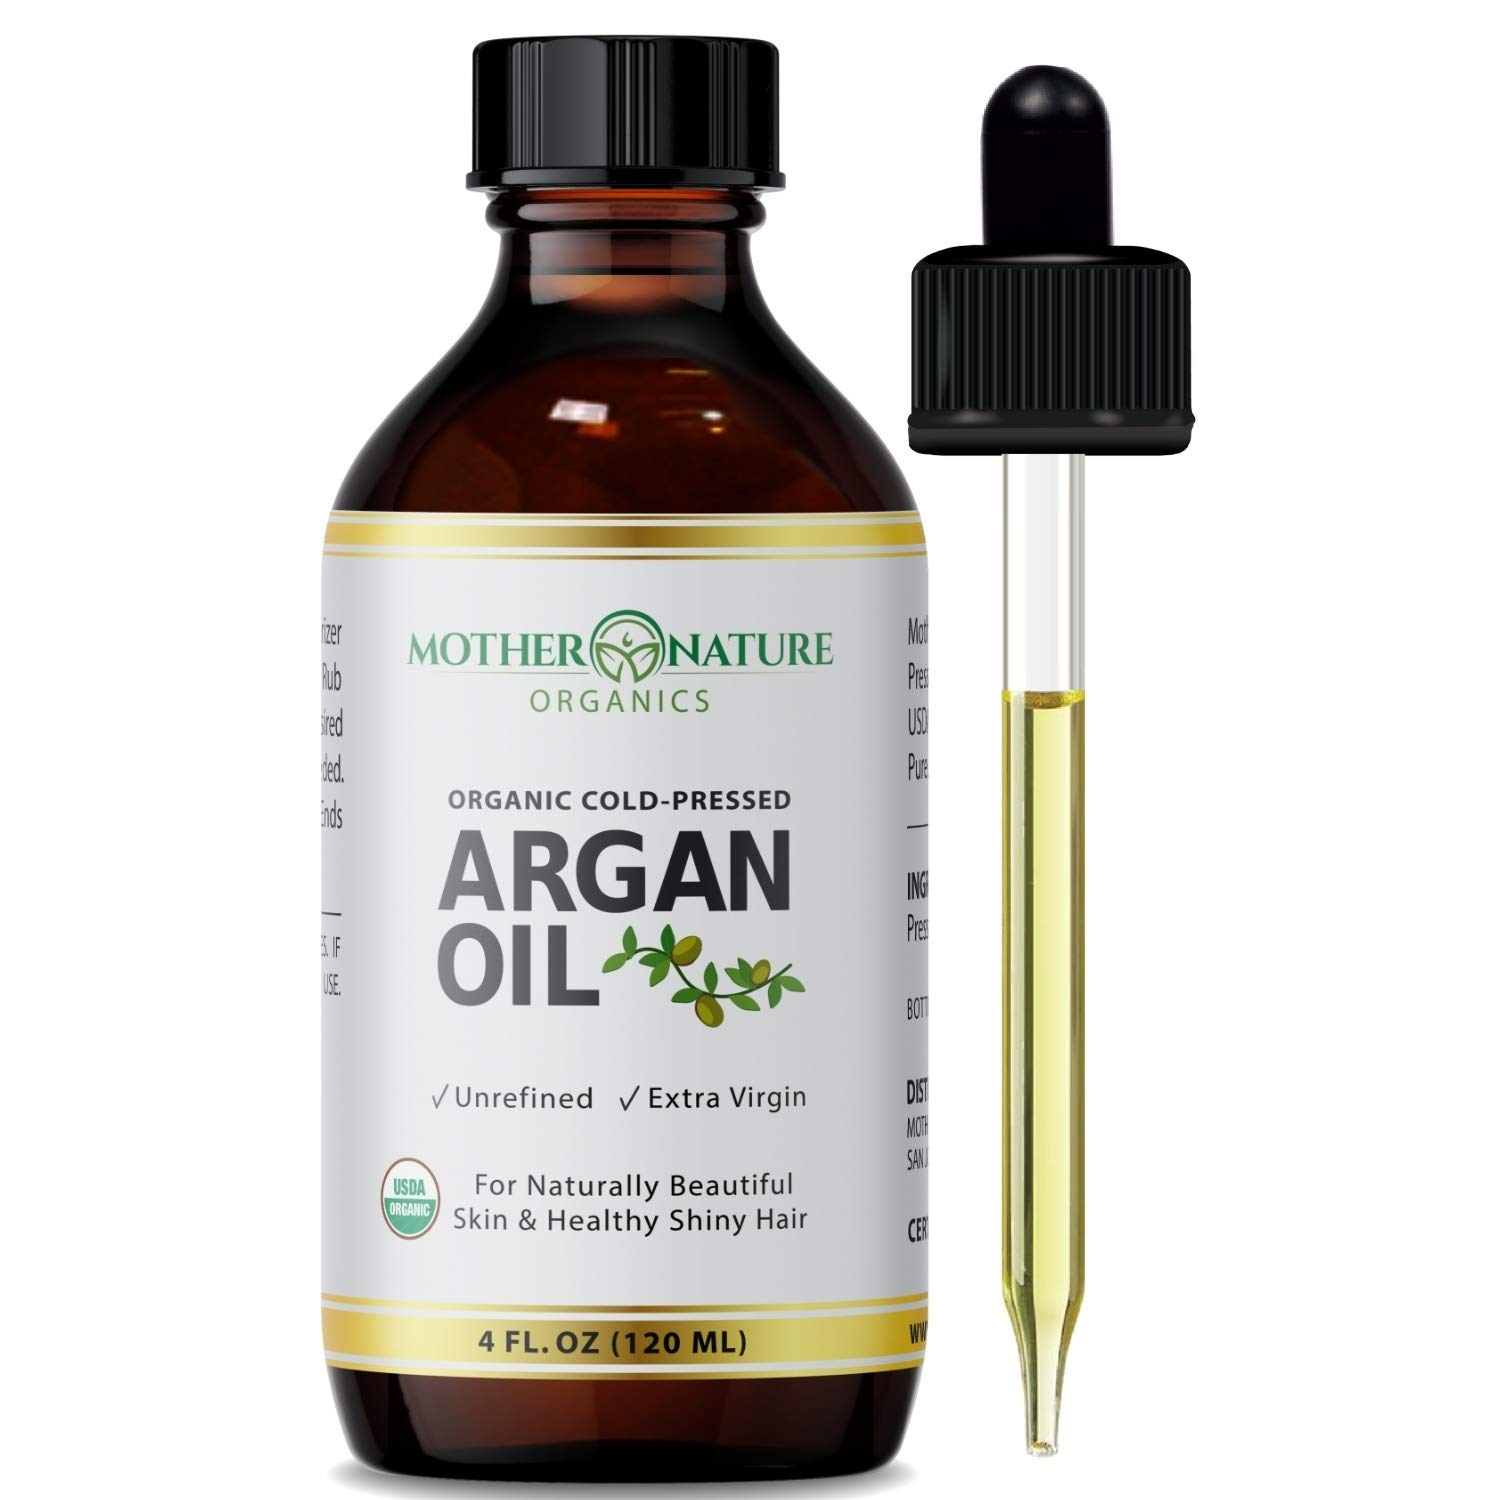 Argan Oil - 100% Pure Argan Oil for Hair, Face, Skin & Nails (4oz) - USDA Certified Organic Argan Oil of Morocco, Cold Pressed, Vegan, Non-GMO, Unfiltered & Natural Anti-Aging Moisturizer